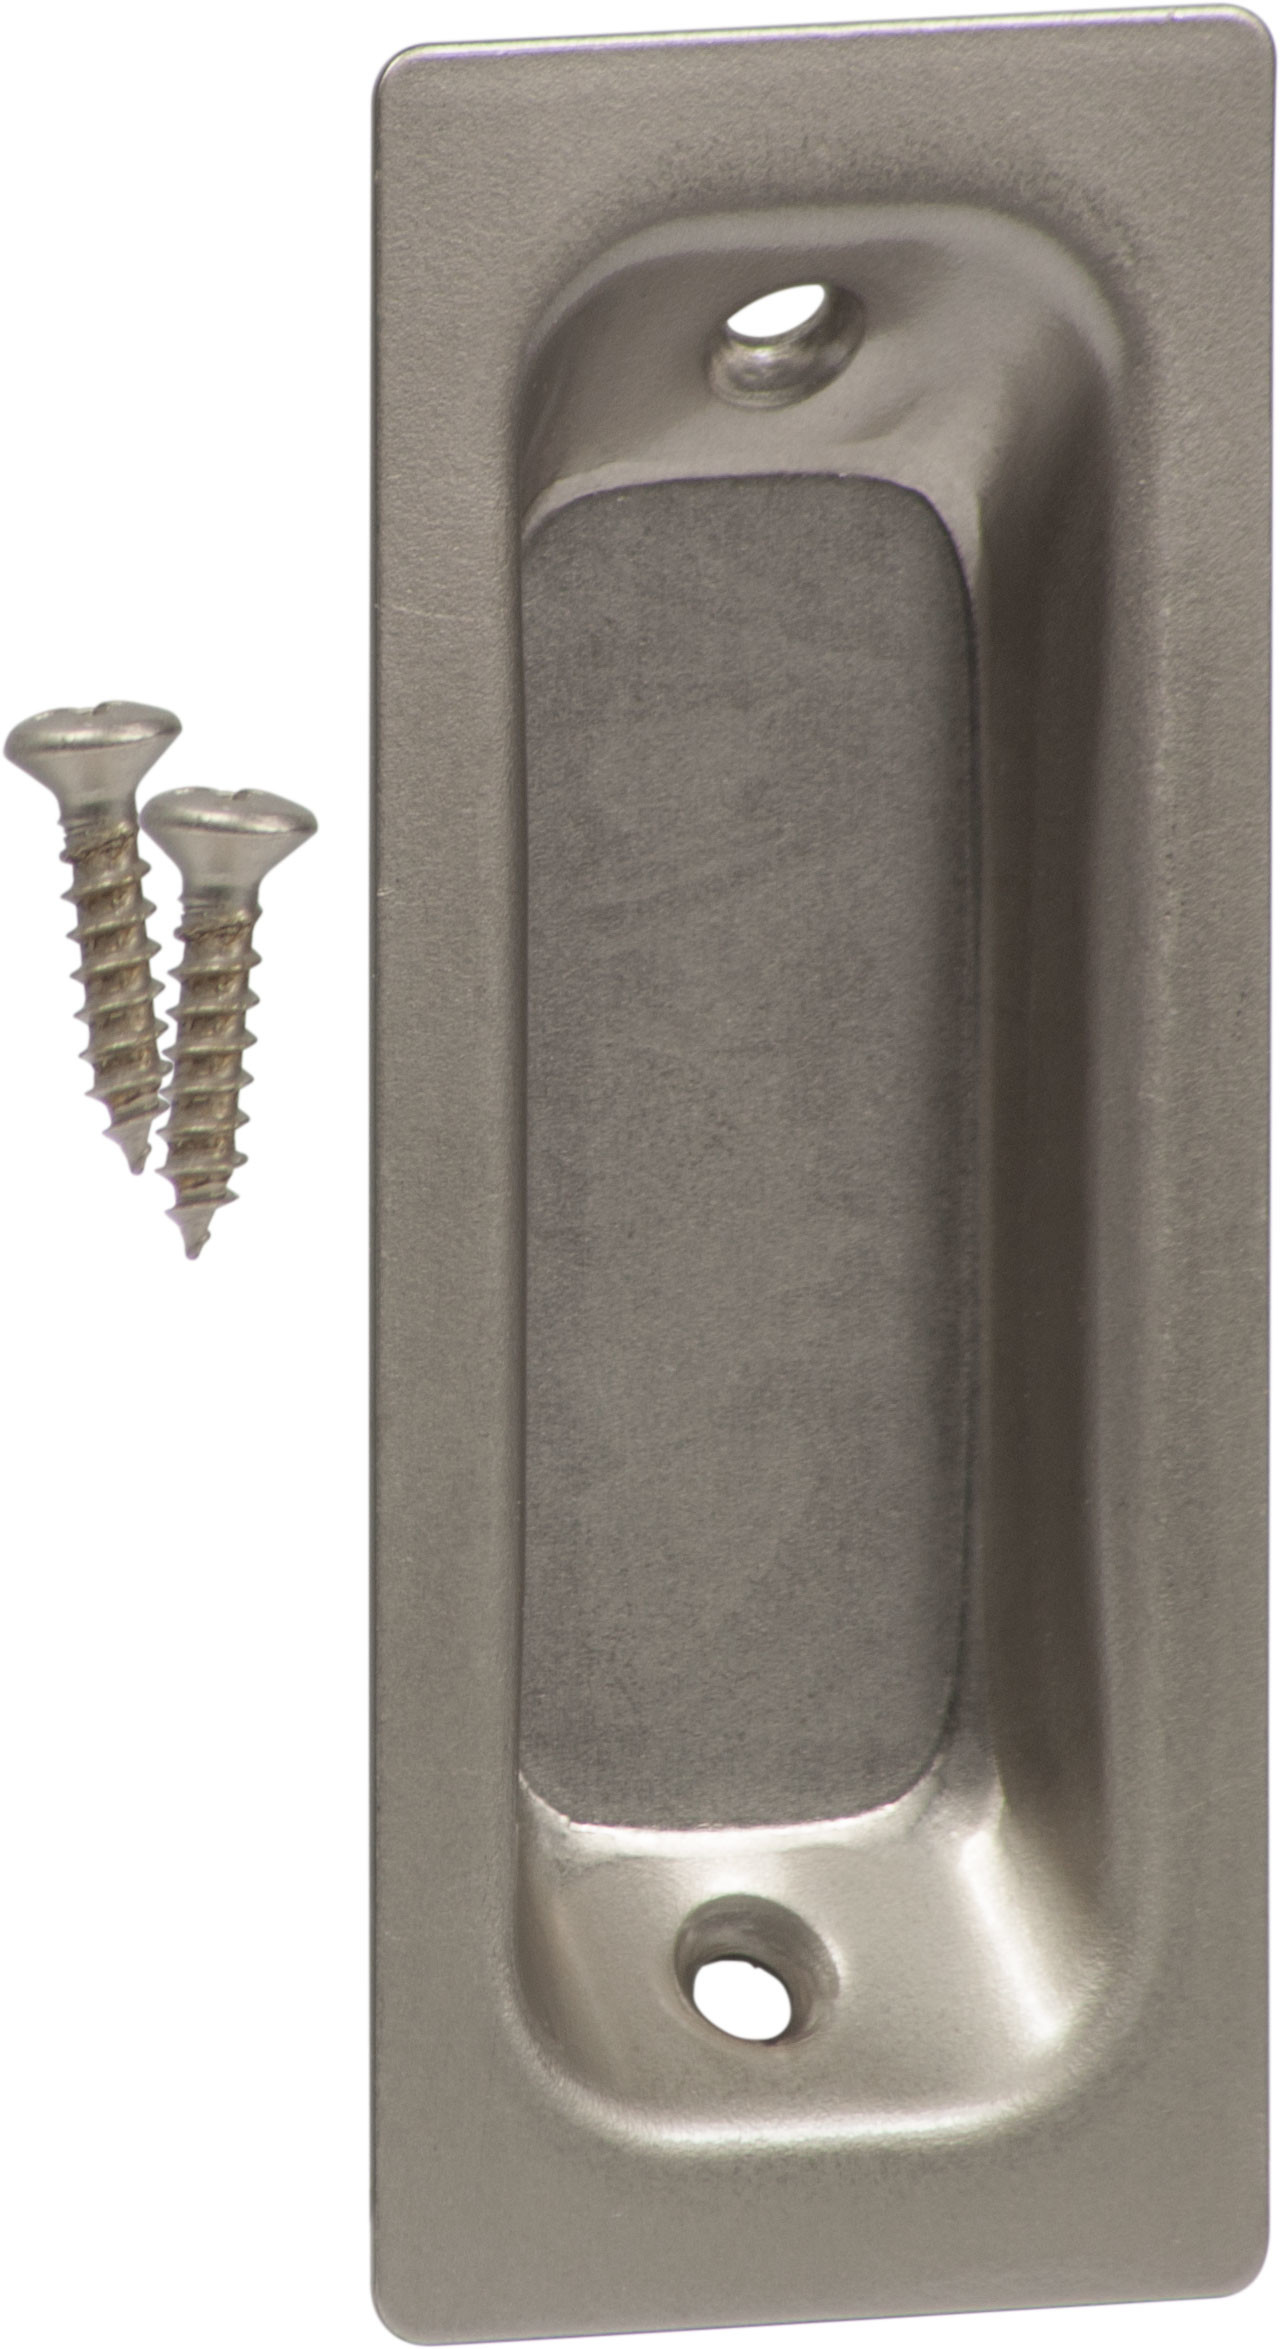 Picture of: National Hardware N335 588 Oblong Flush Door Pull 1 3 8 By 3 1 4 Inch Satin Nickel 038613335585 3